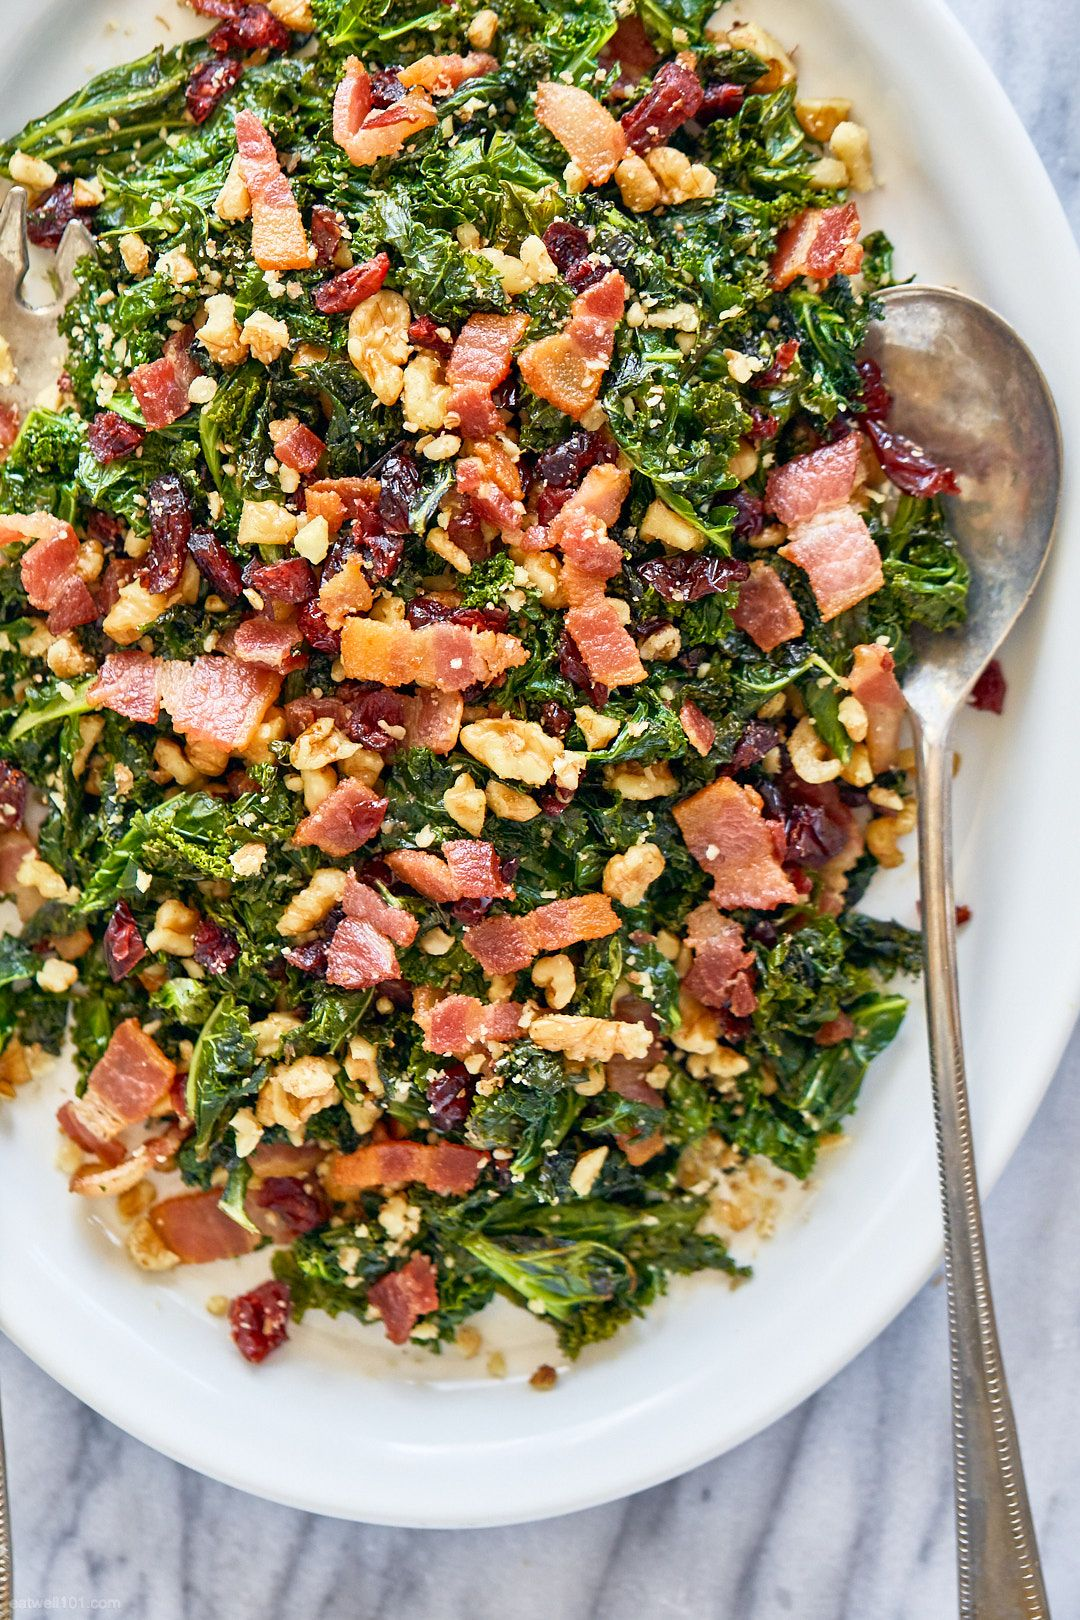 Healthy Sauteed Kale Salad Recipe With Bacon Walnuts And Cranberries Kale Salad Recipe Sauteed Kale Easy Kale Recipes Beef Pasta Recipes